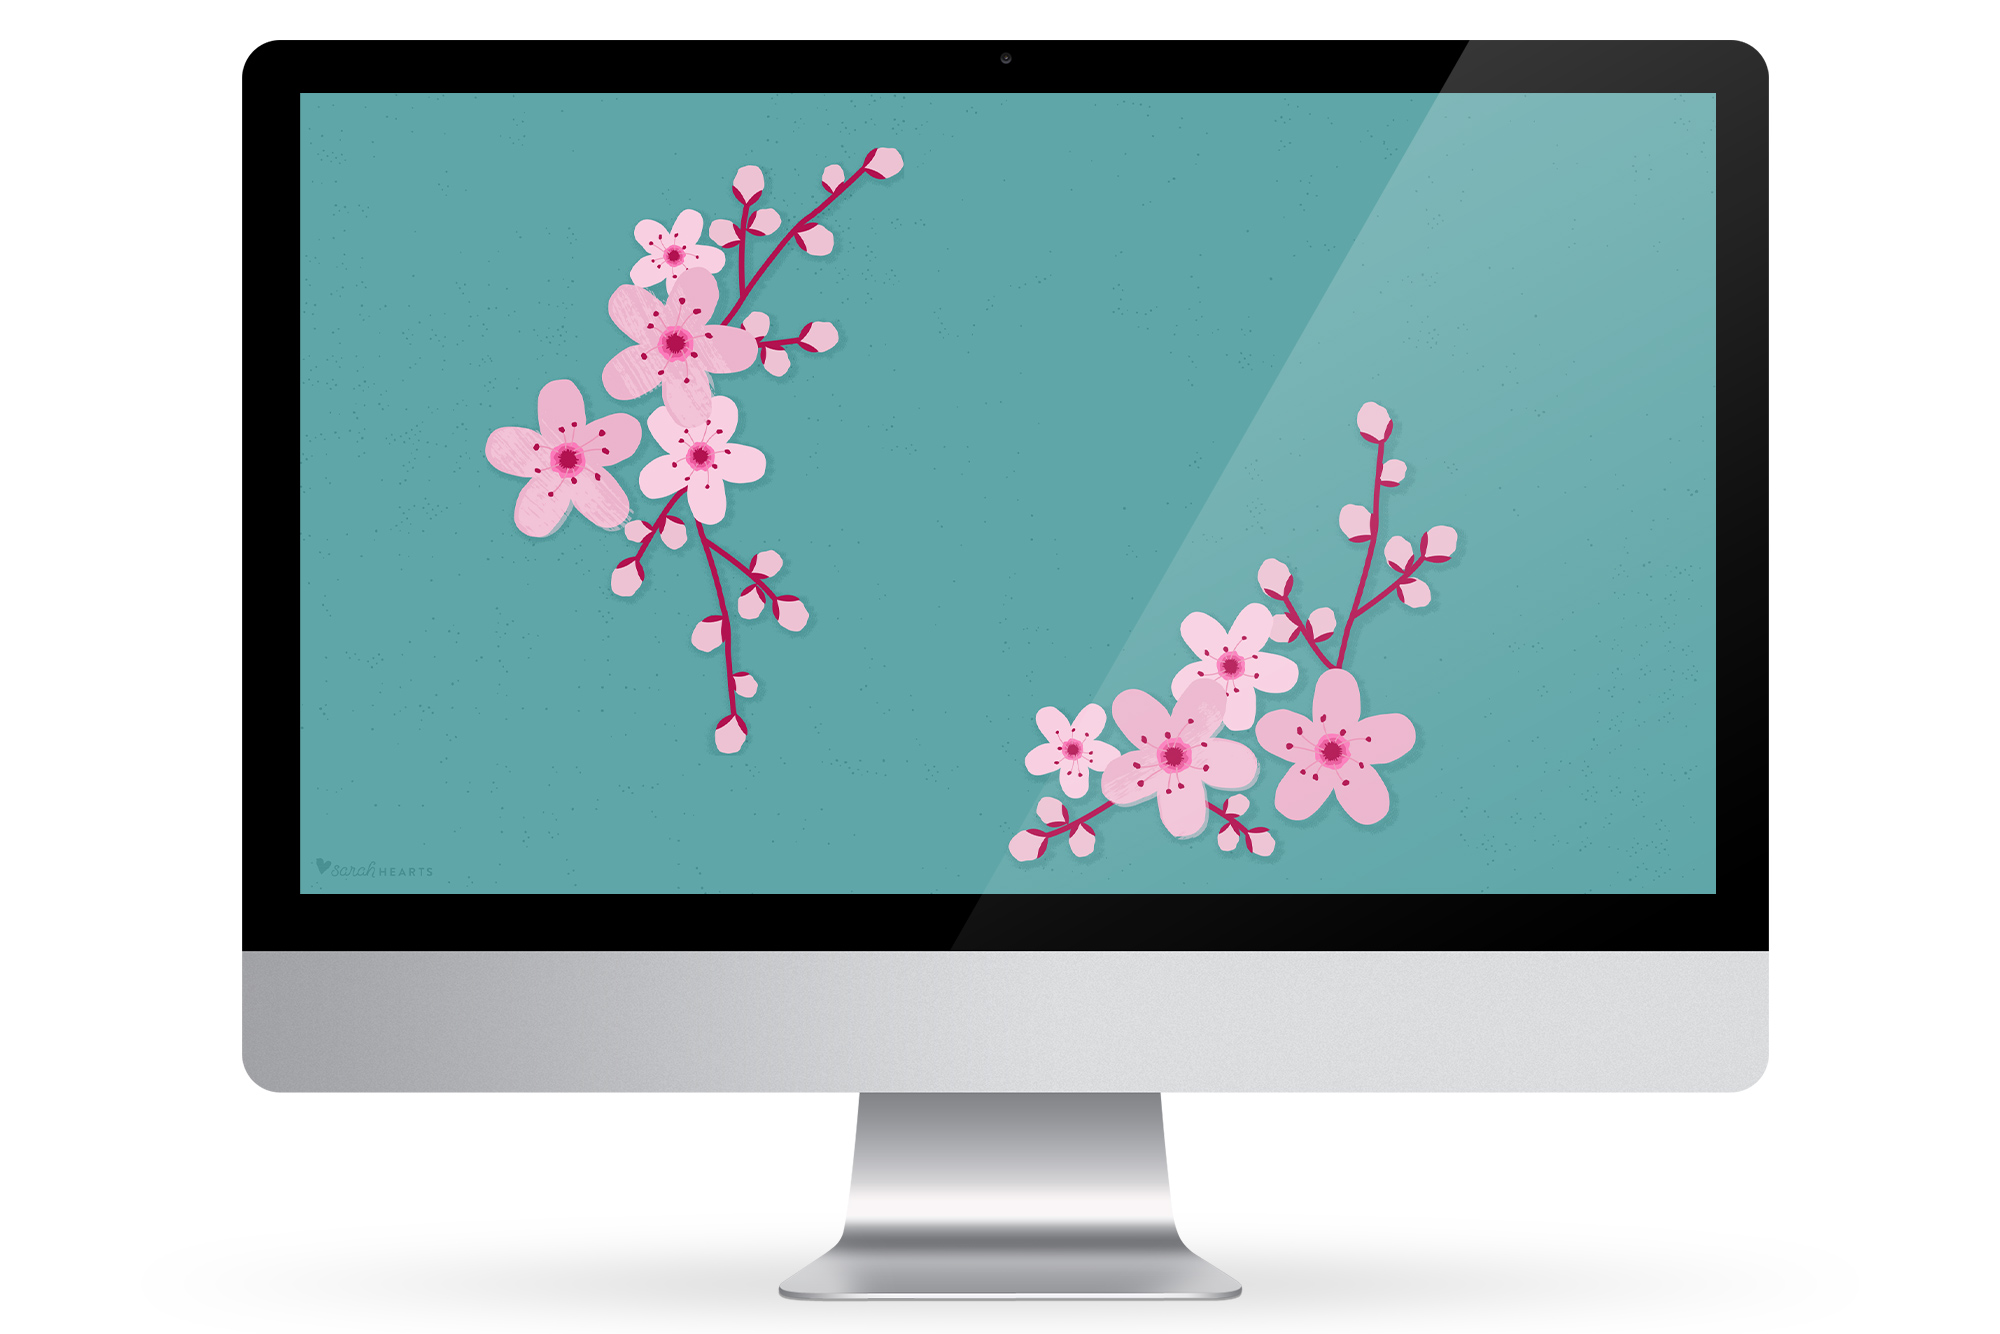 ... computer, phone or tablet with this free cherry blossom wallpaper